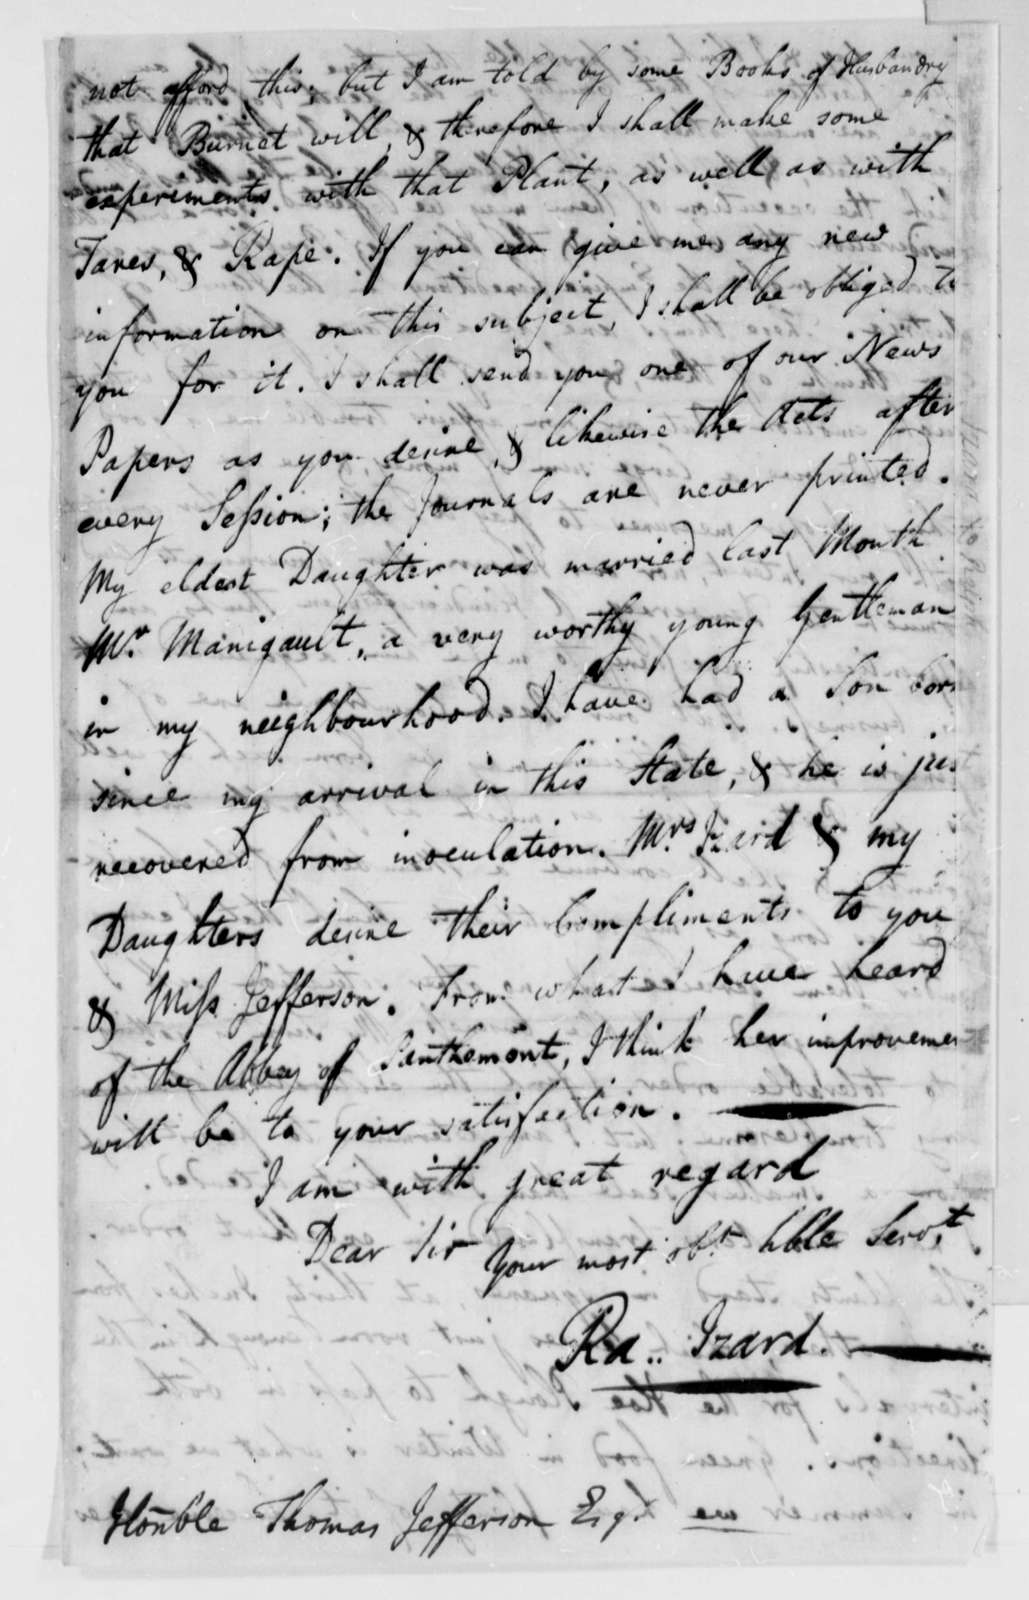 Ralph Izard to Thomas Jefferson, June 10, 1785